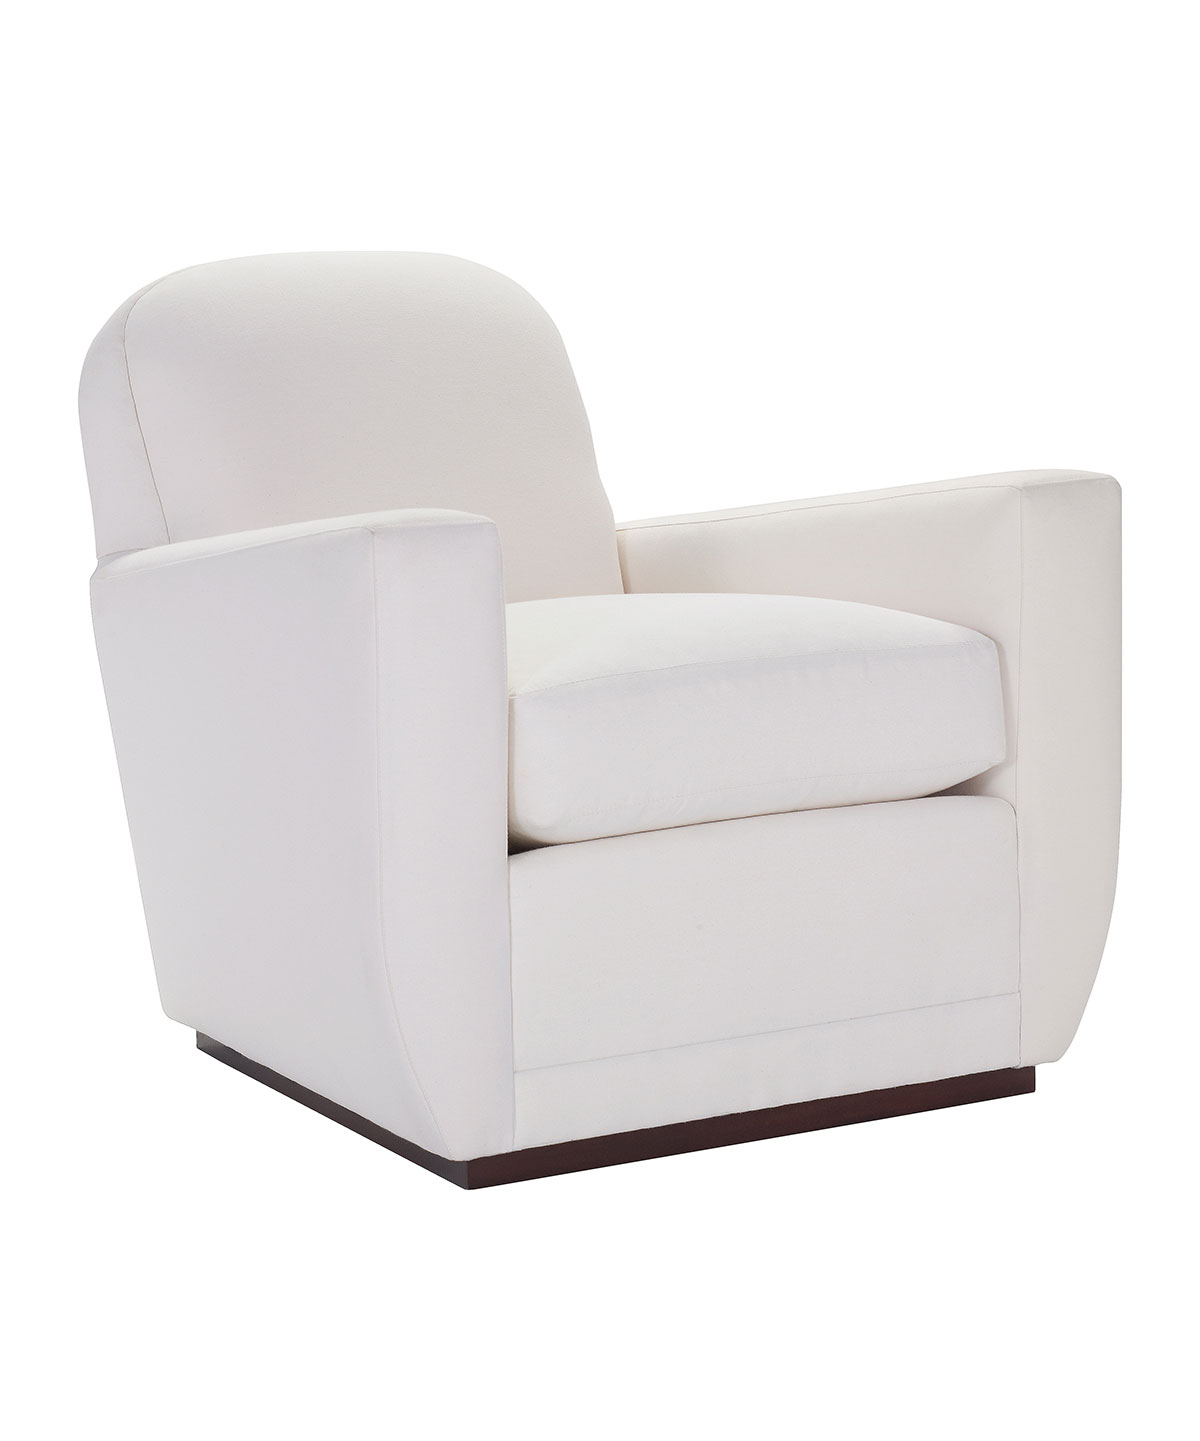 Knox Lounge Chair